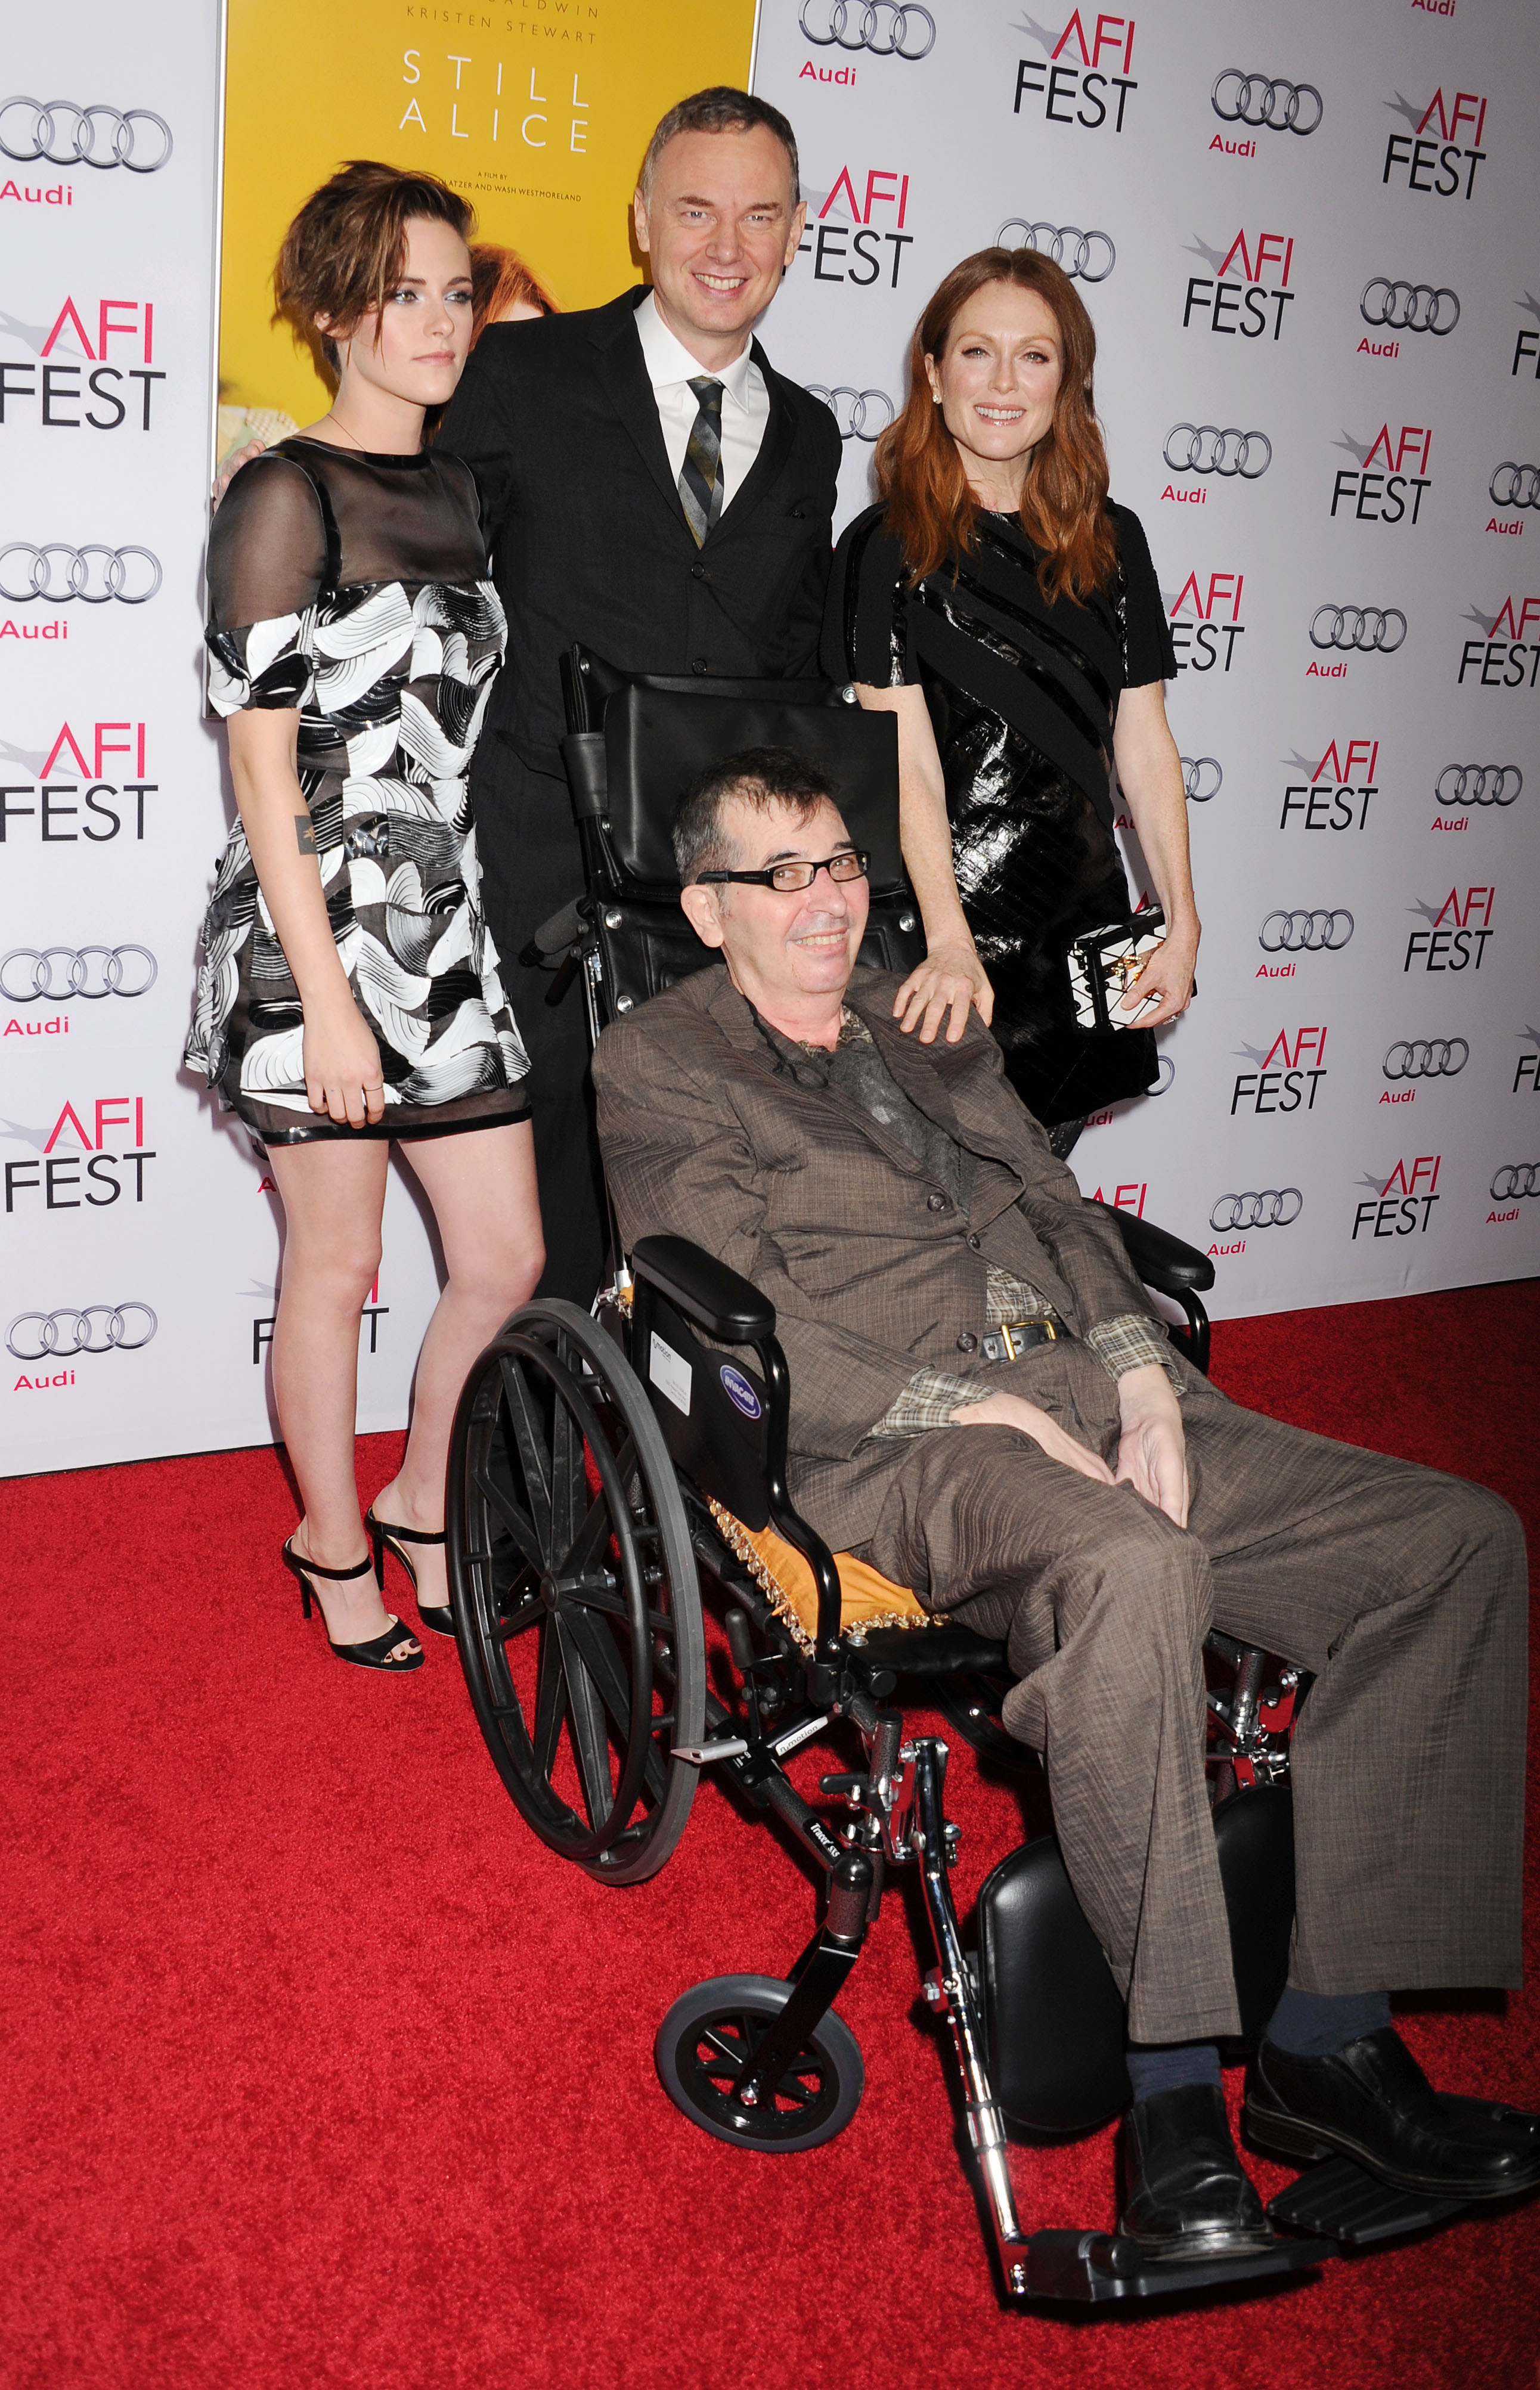 From left clockwise, actress Kristen Stewart, director Wash Westmoreland, actress Julianne Moore and director Richard Glatzer arrive at a premier of Still Alice at Dolby Theatre in Hollywood on Nov. 12, 2014